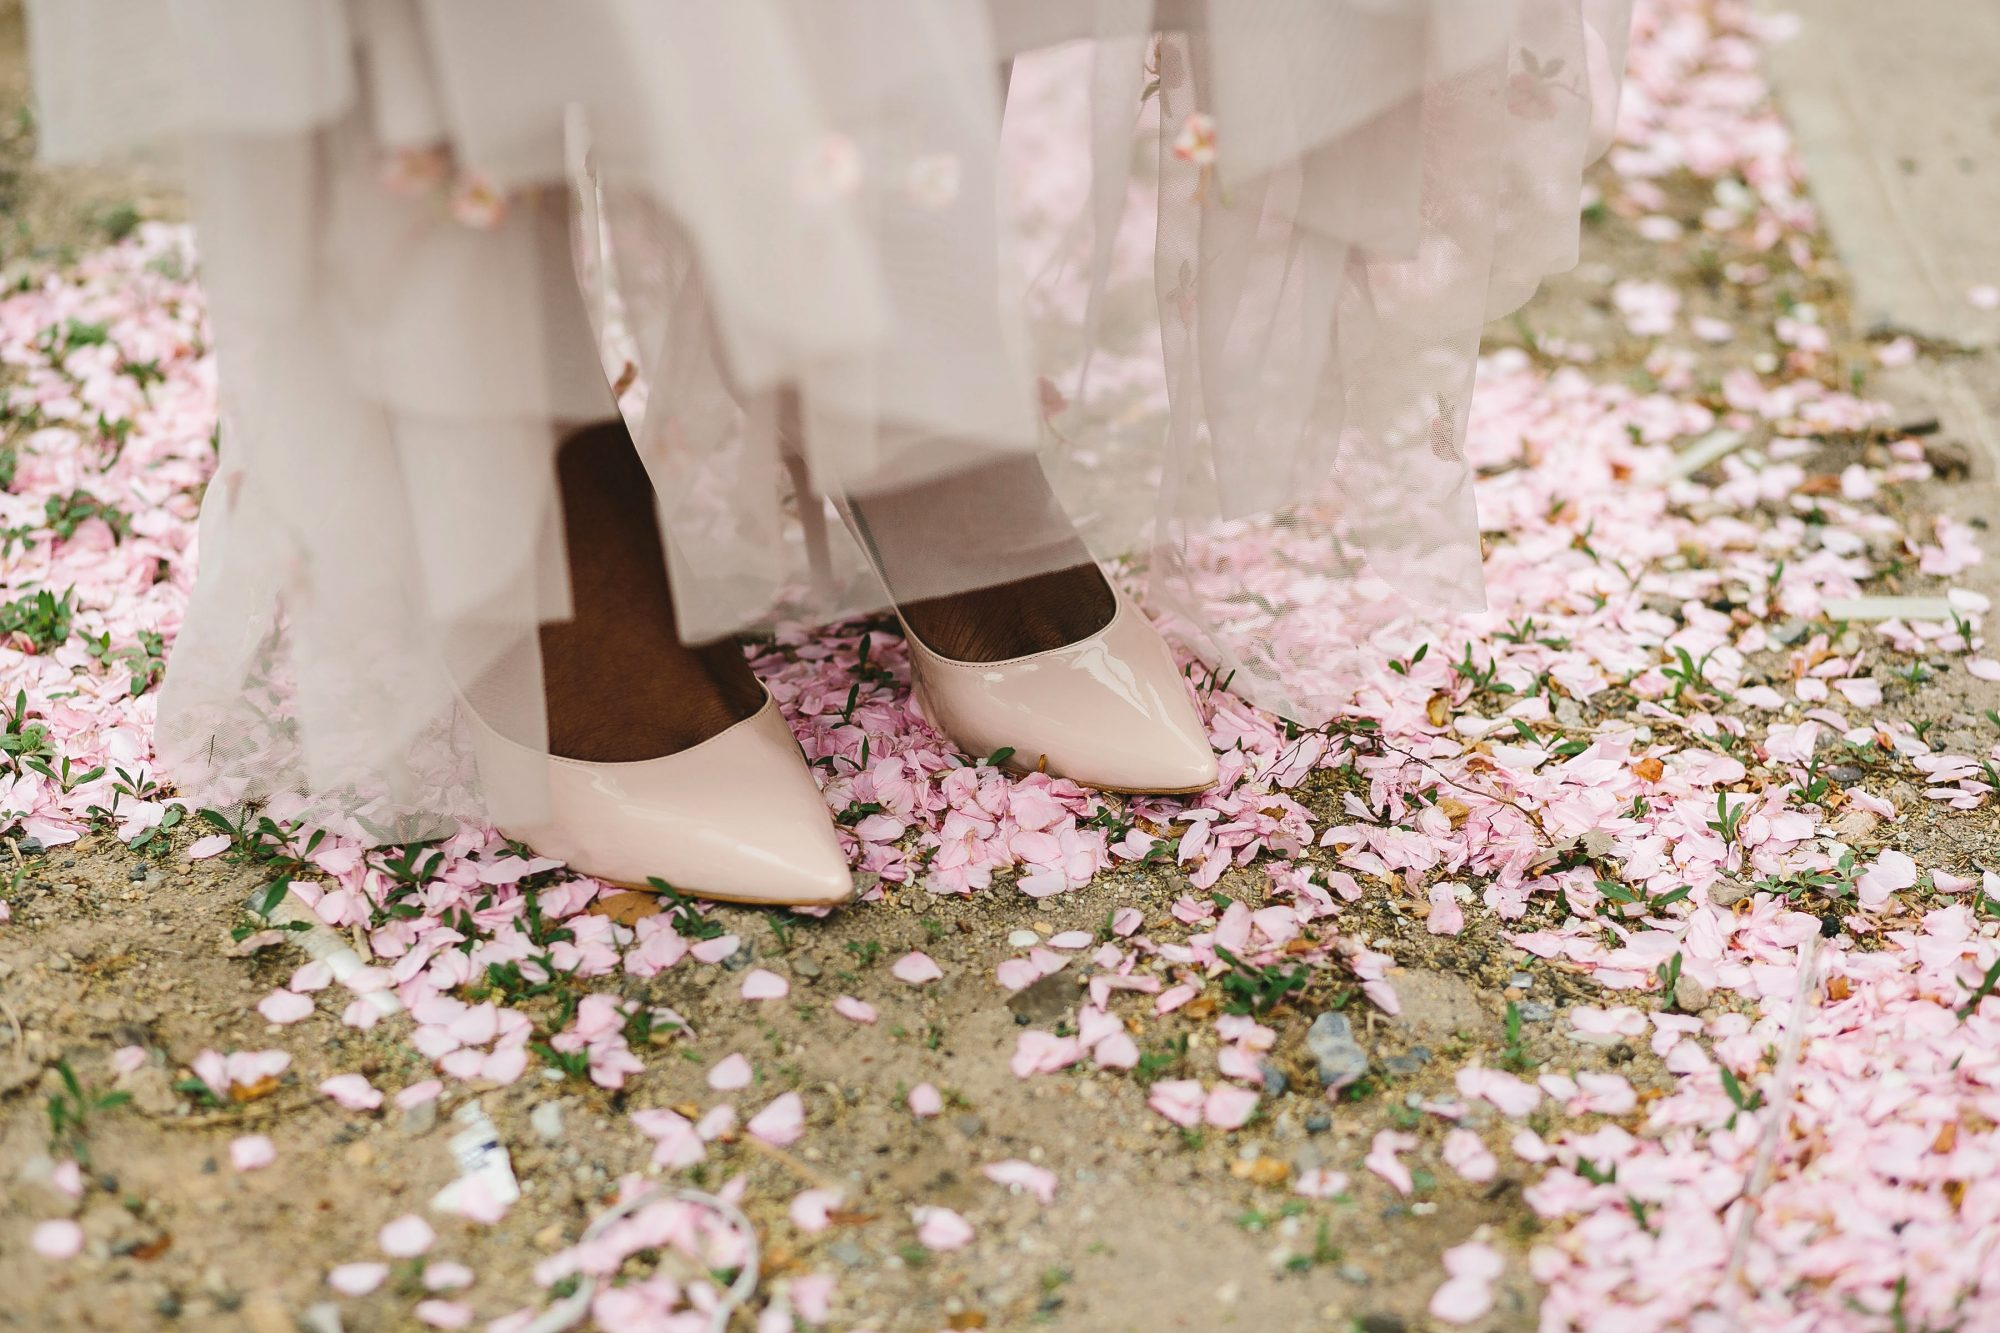 lola quinlan elopement bride shoes petals